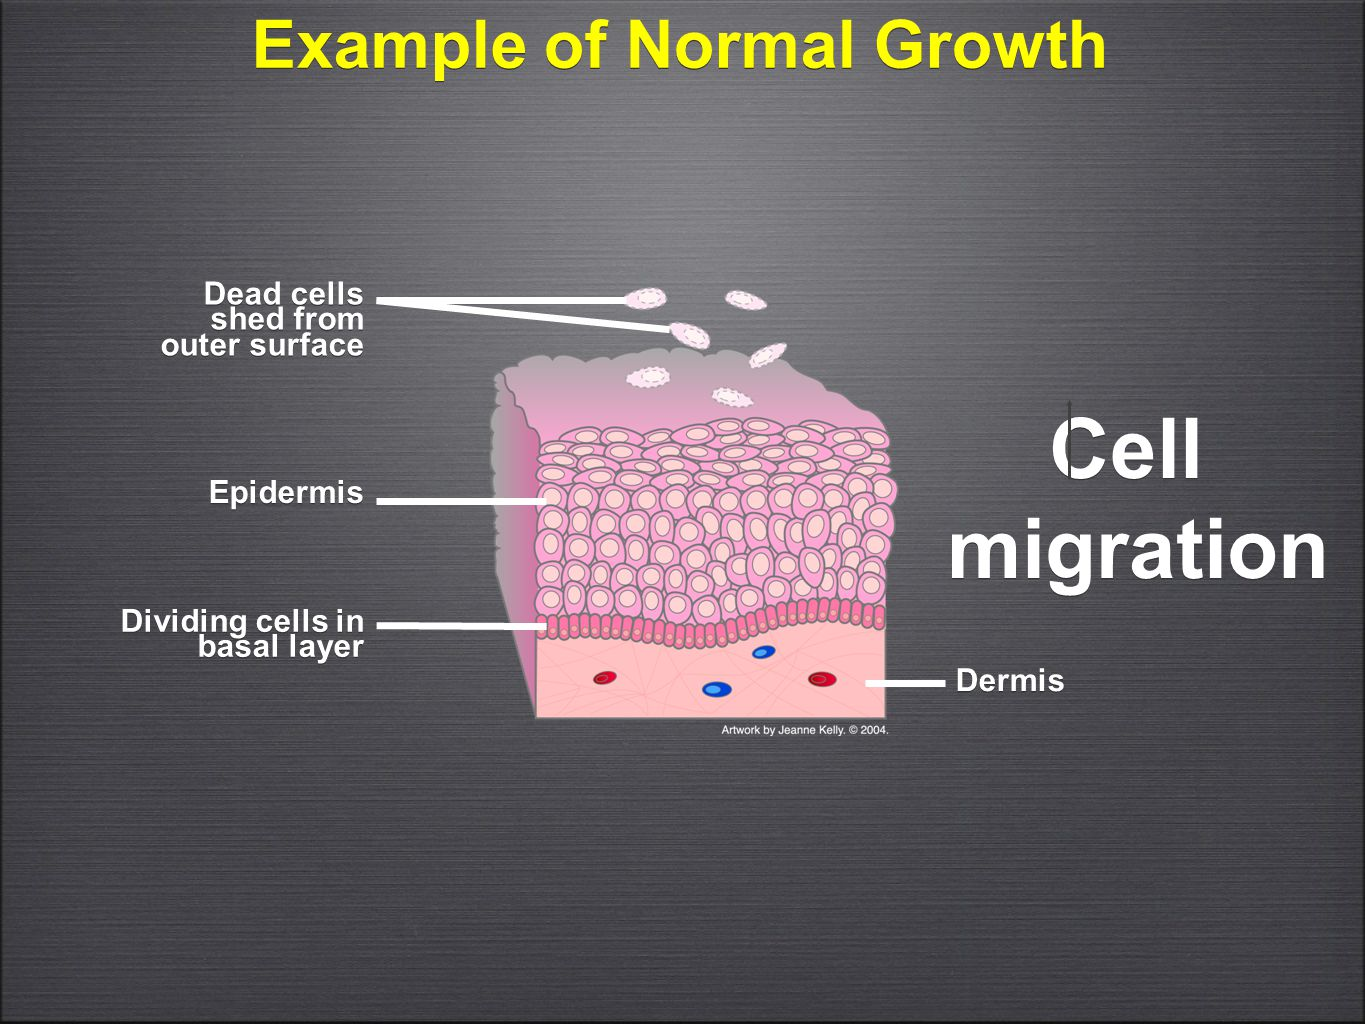 Example of Normal Growth Cell migration Cell migration Dermis Dividing cells in basal layer Dead cells shed from outer surface Epidermis